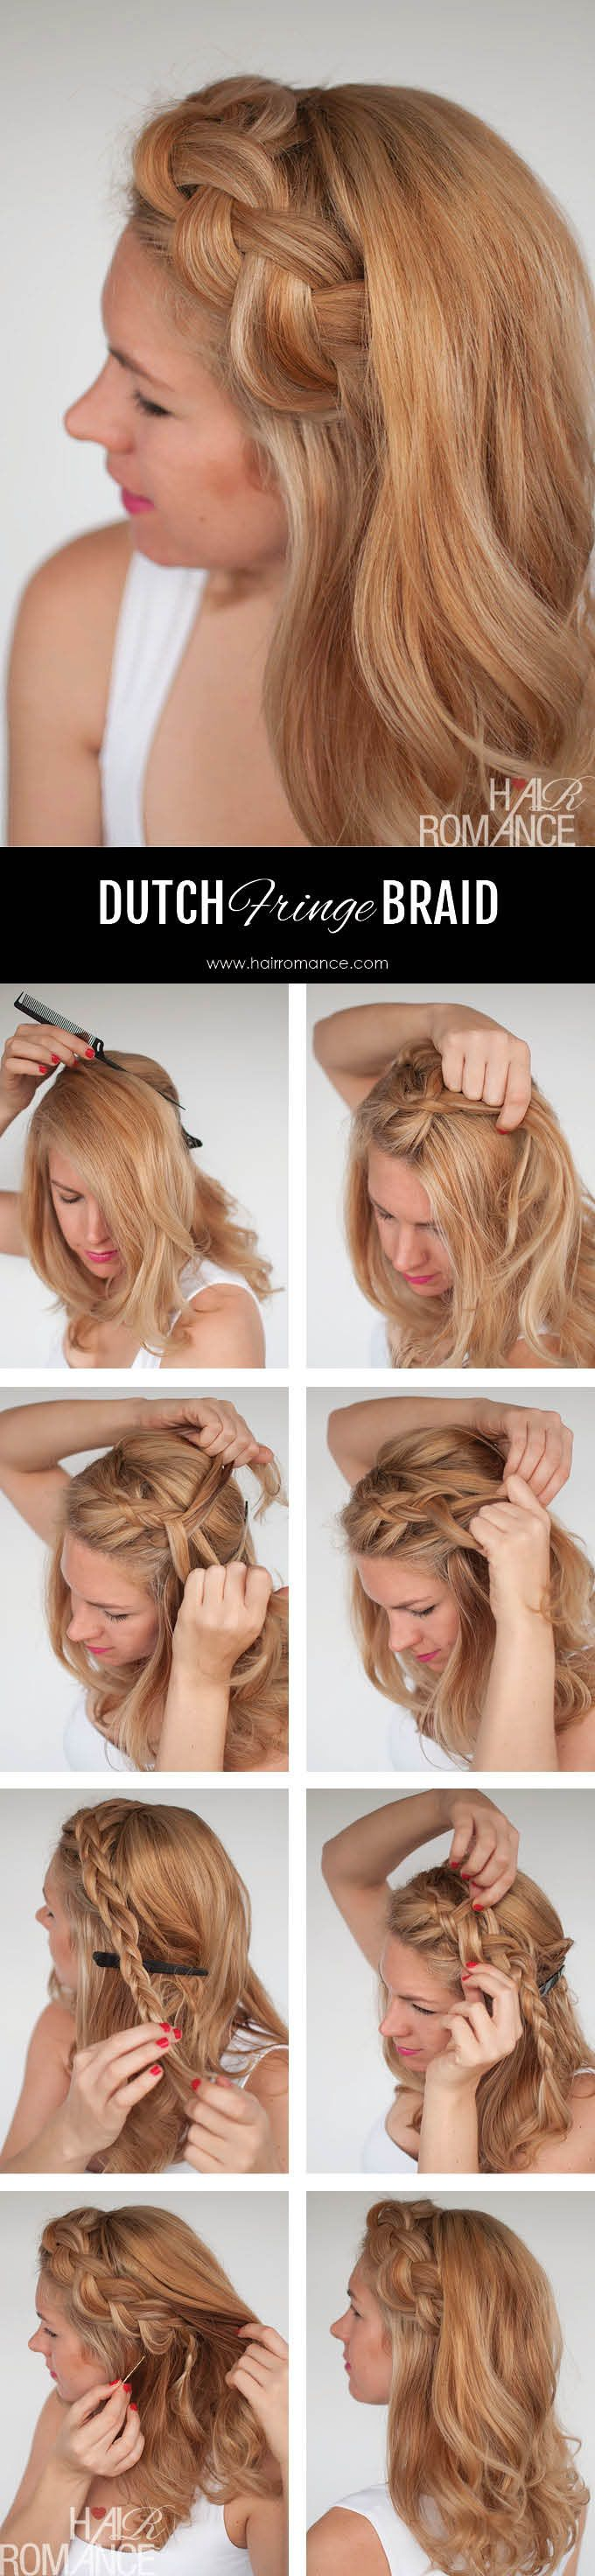 Learn to braid your hair | Life and style | The Guardian